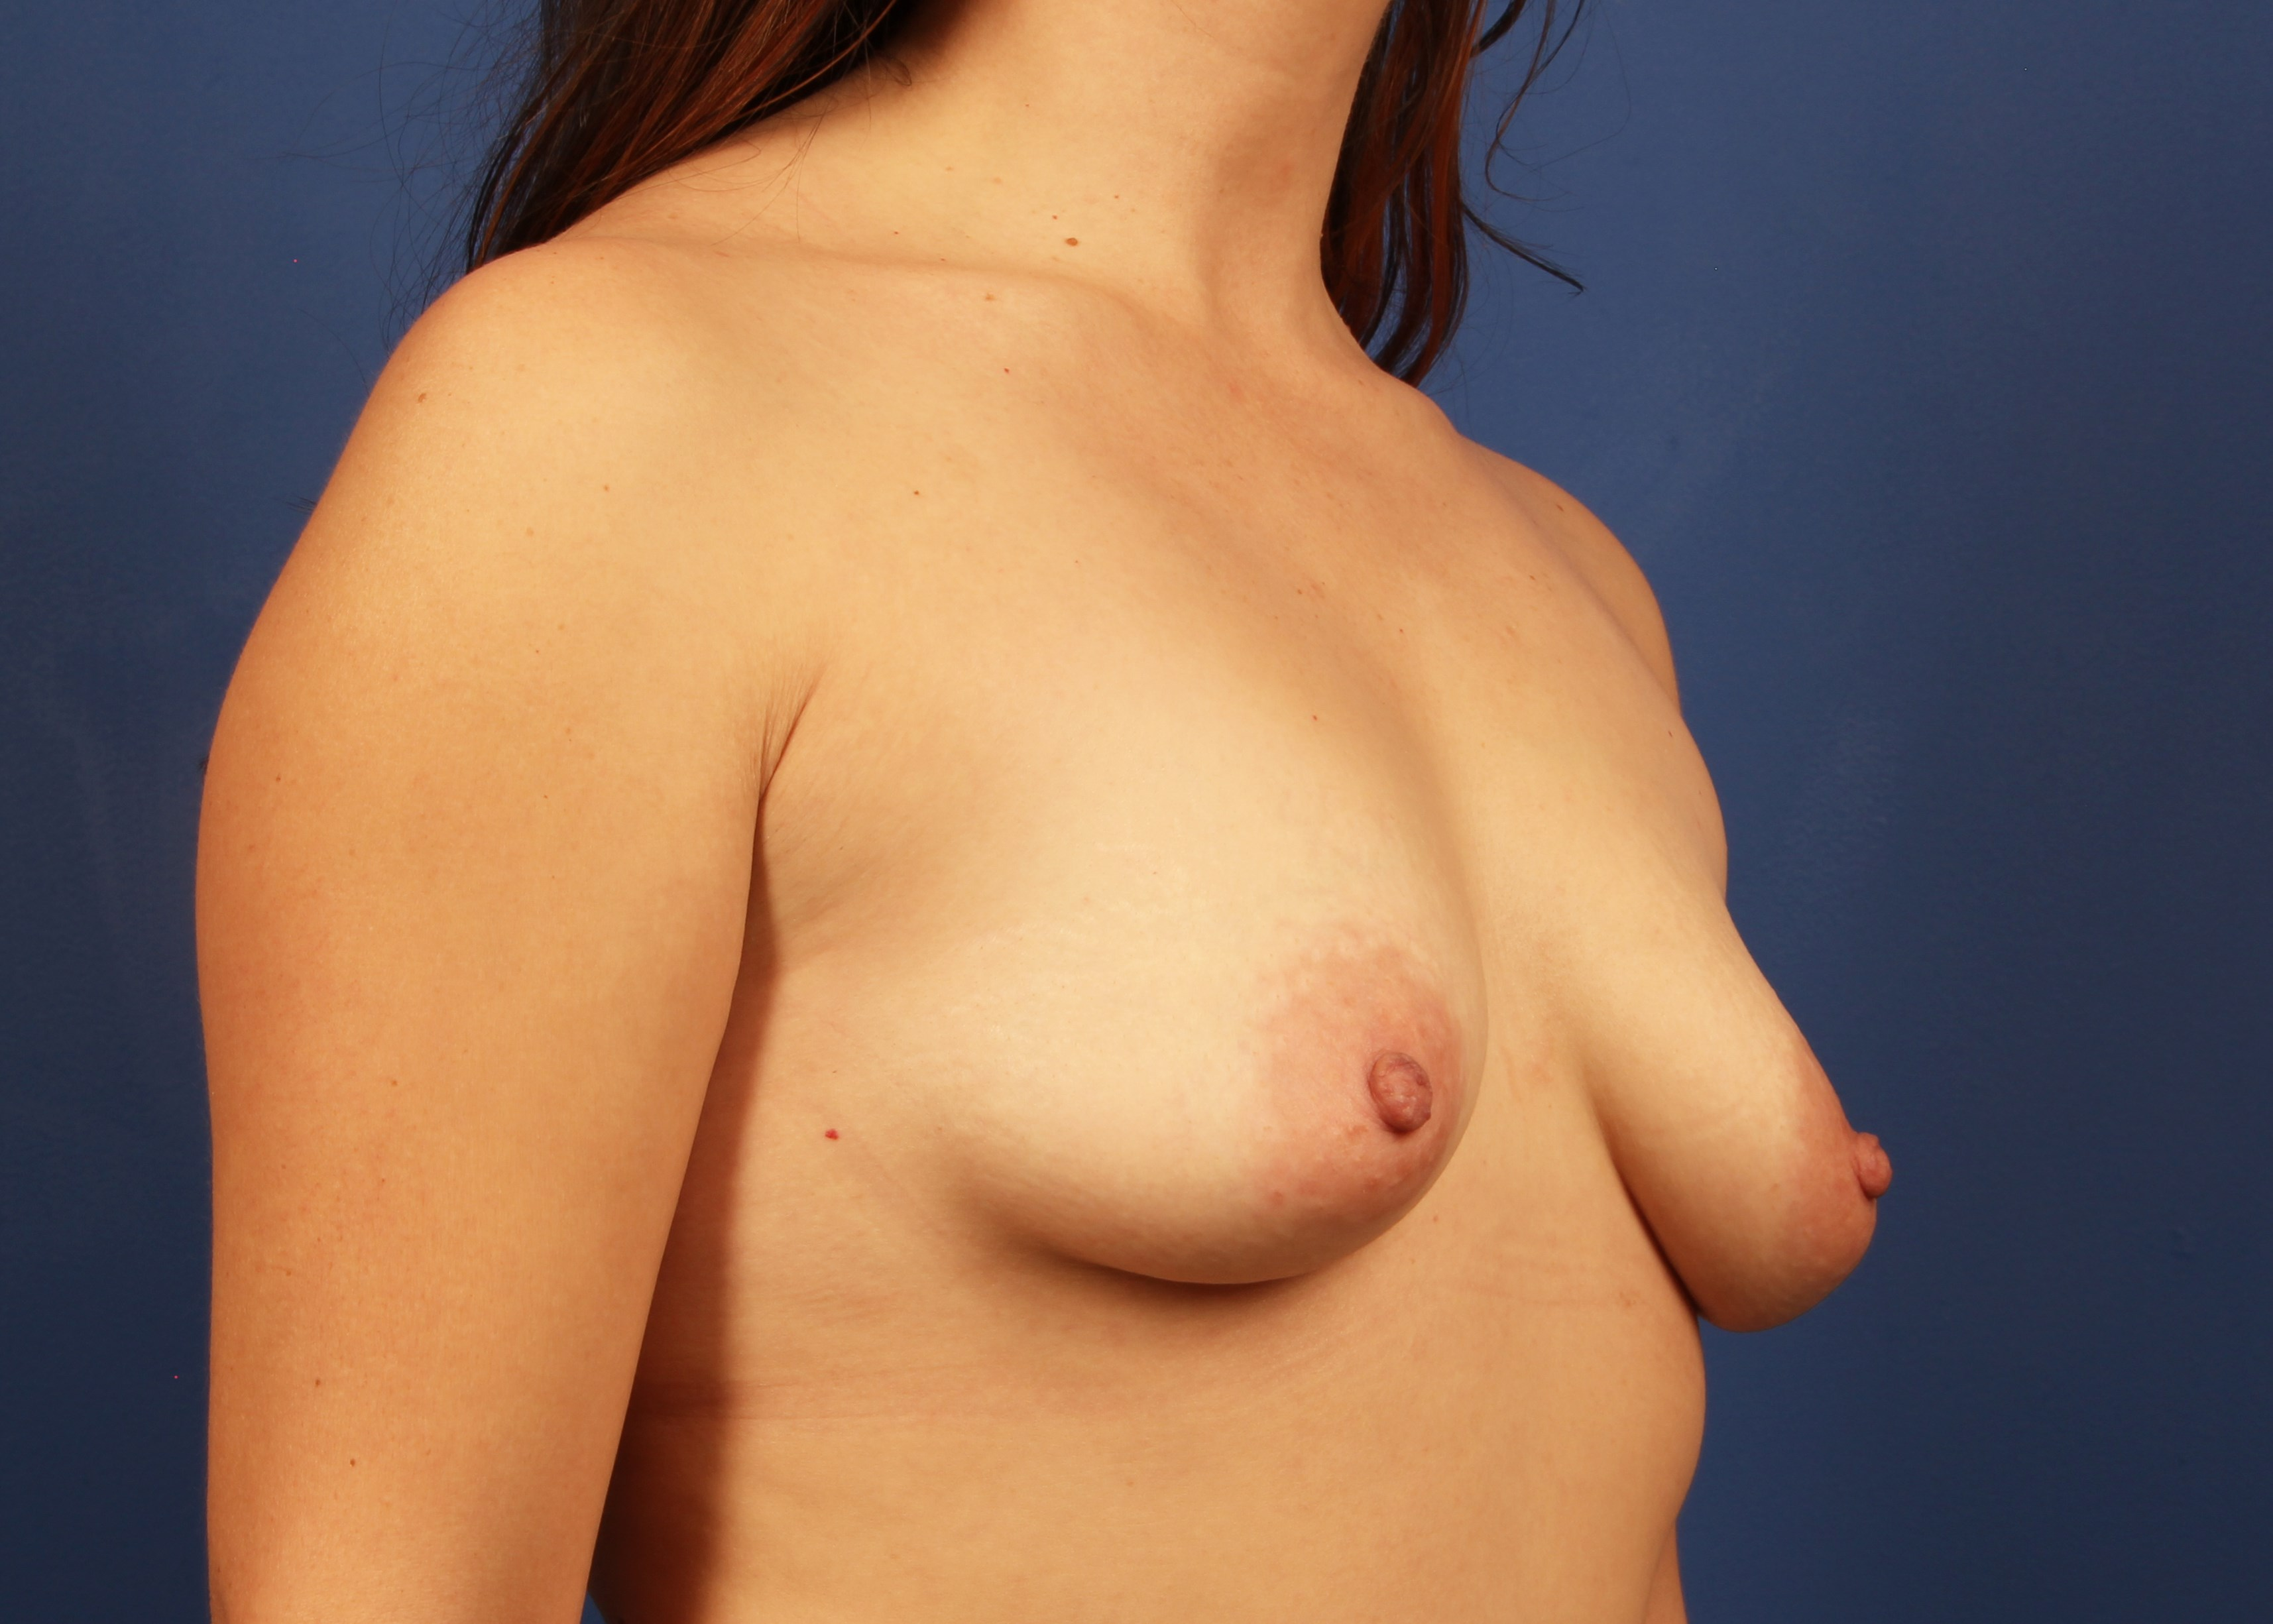 before breast implants Right Oblique View - Right Oblique View